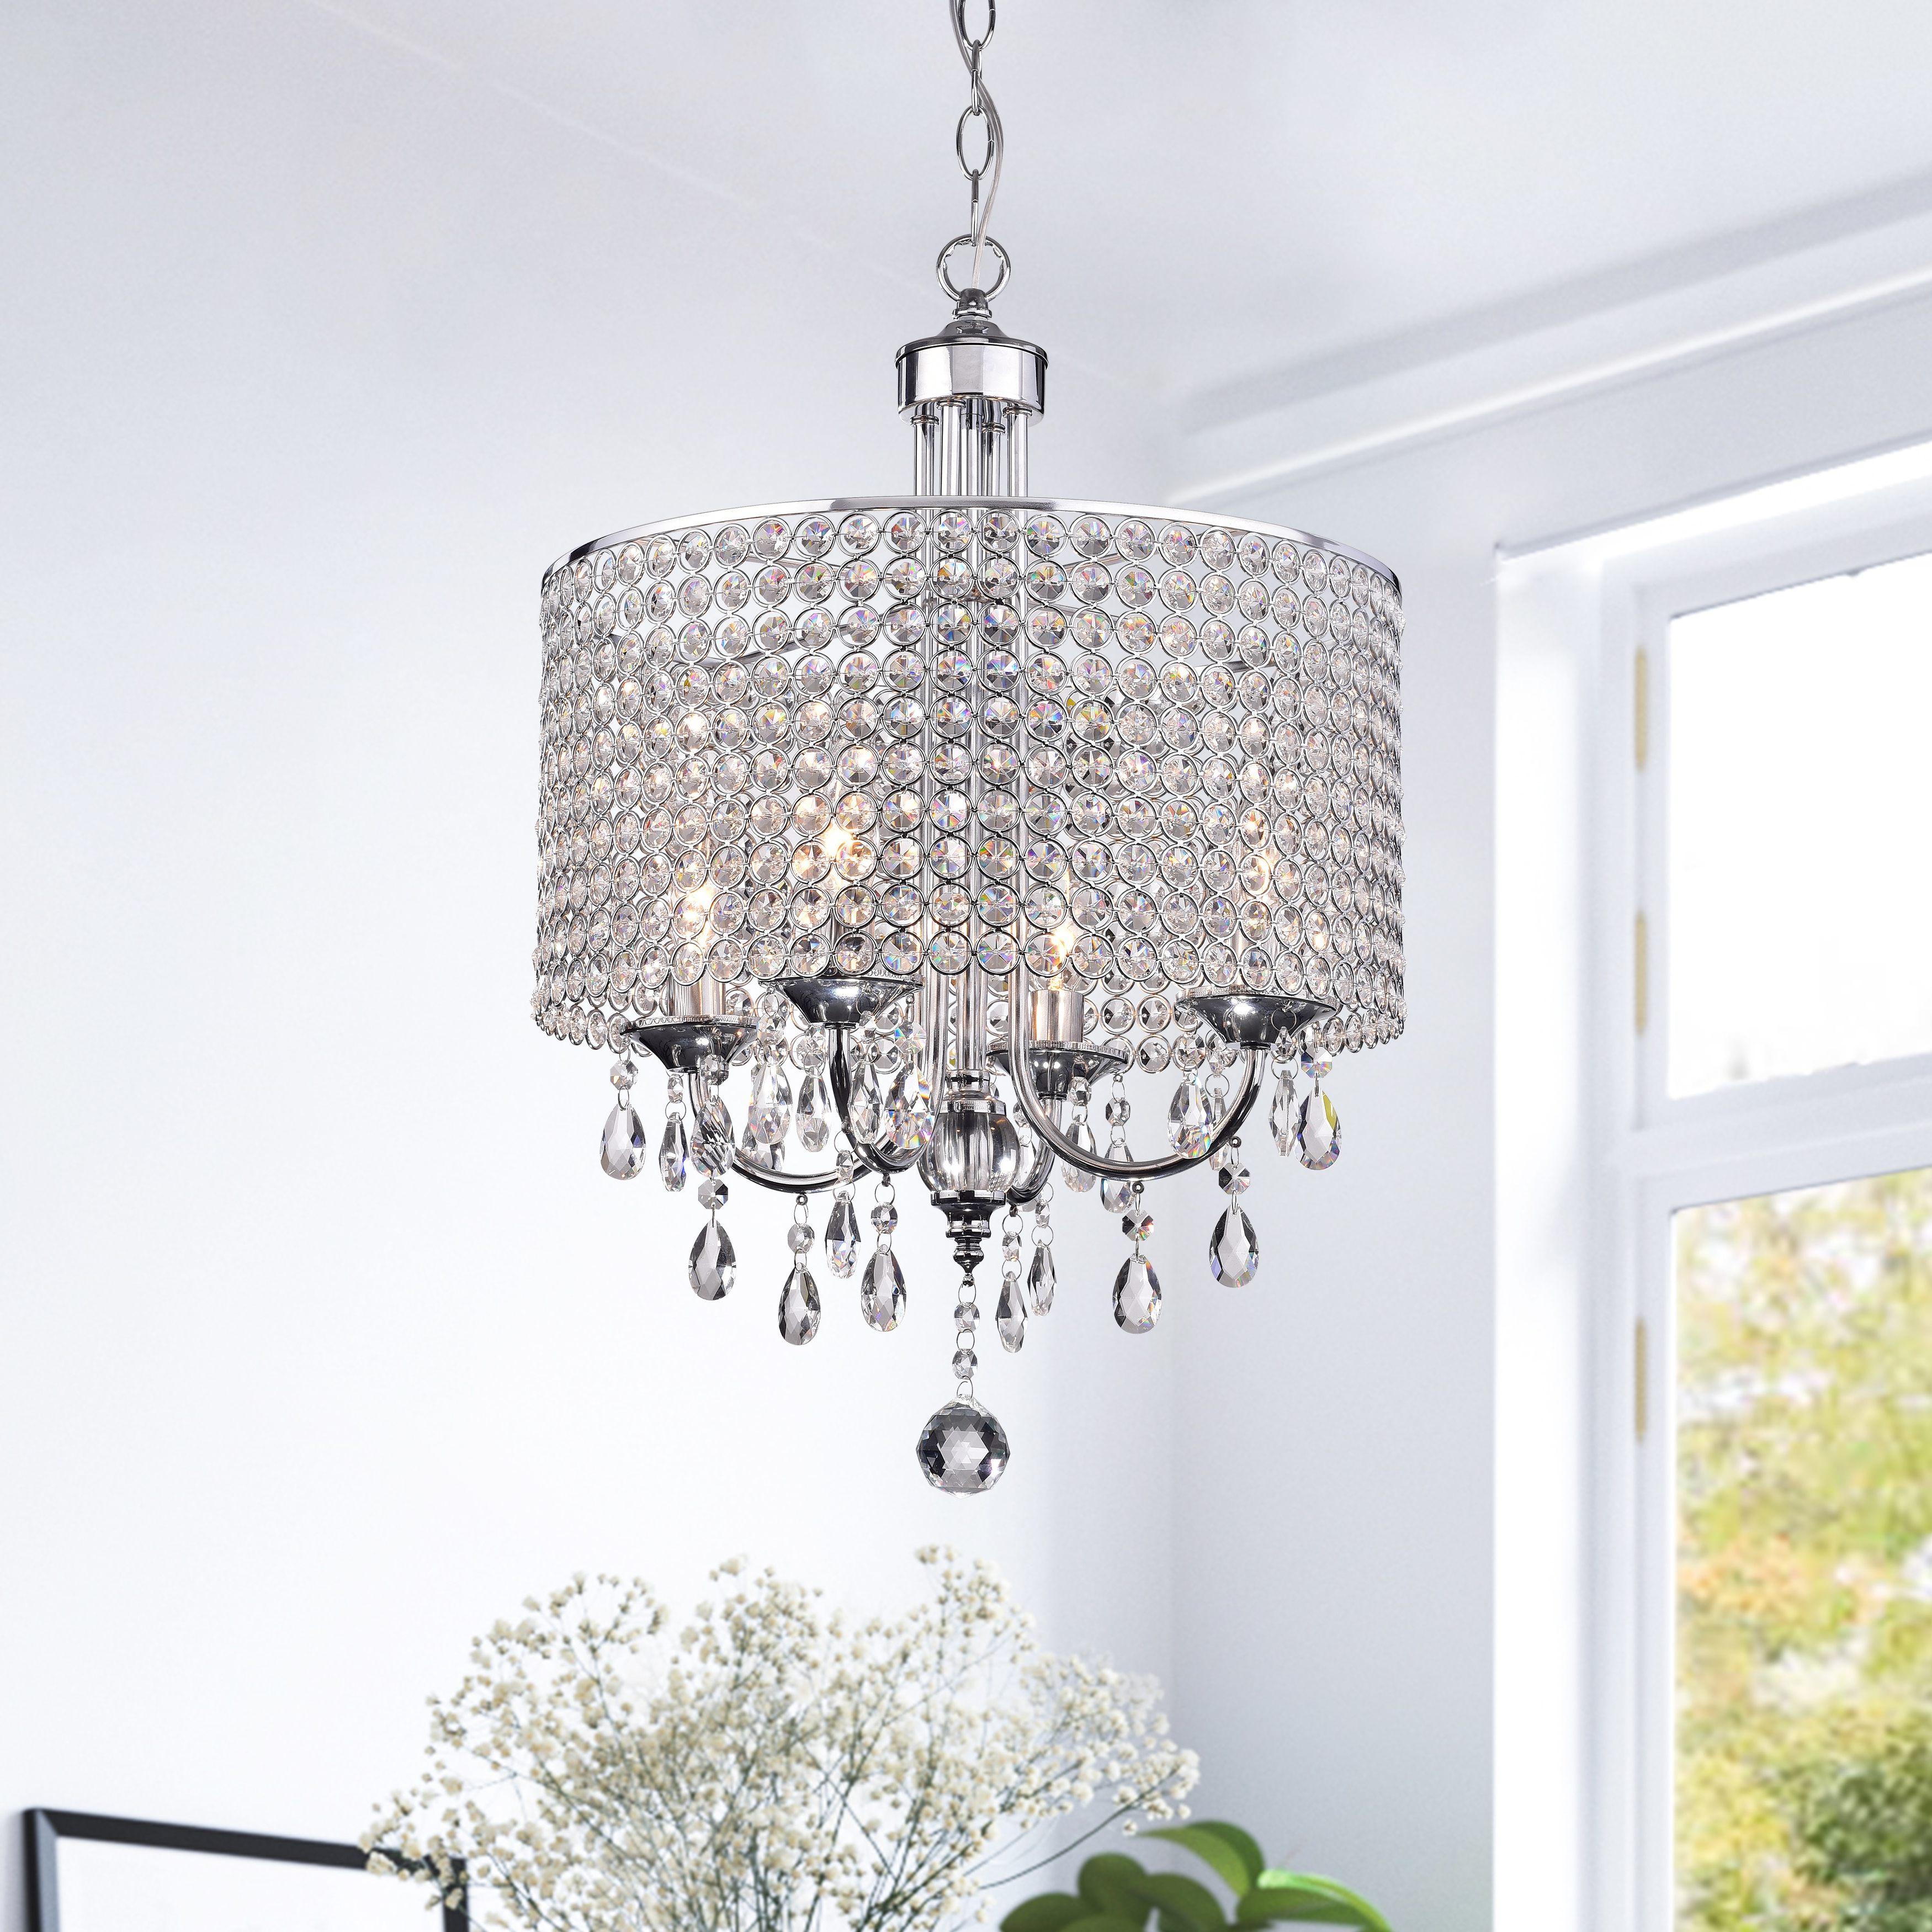 Most Current Silver Orchid Taylor 4 Light Chrome Finish Crystal Intended For Albano 4 Light Crystal Chandeliers (View 8 of 25)